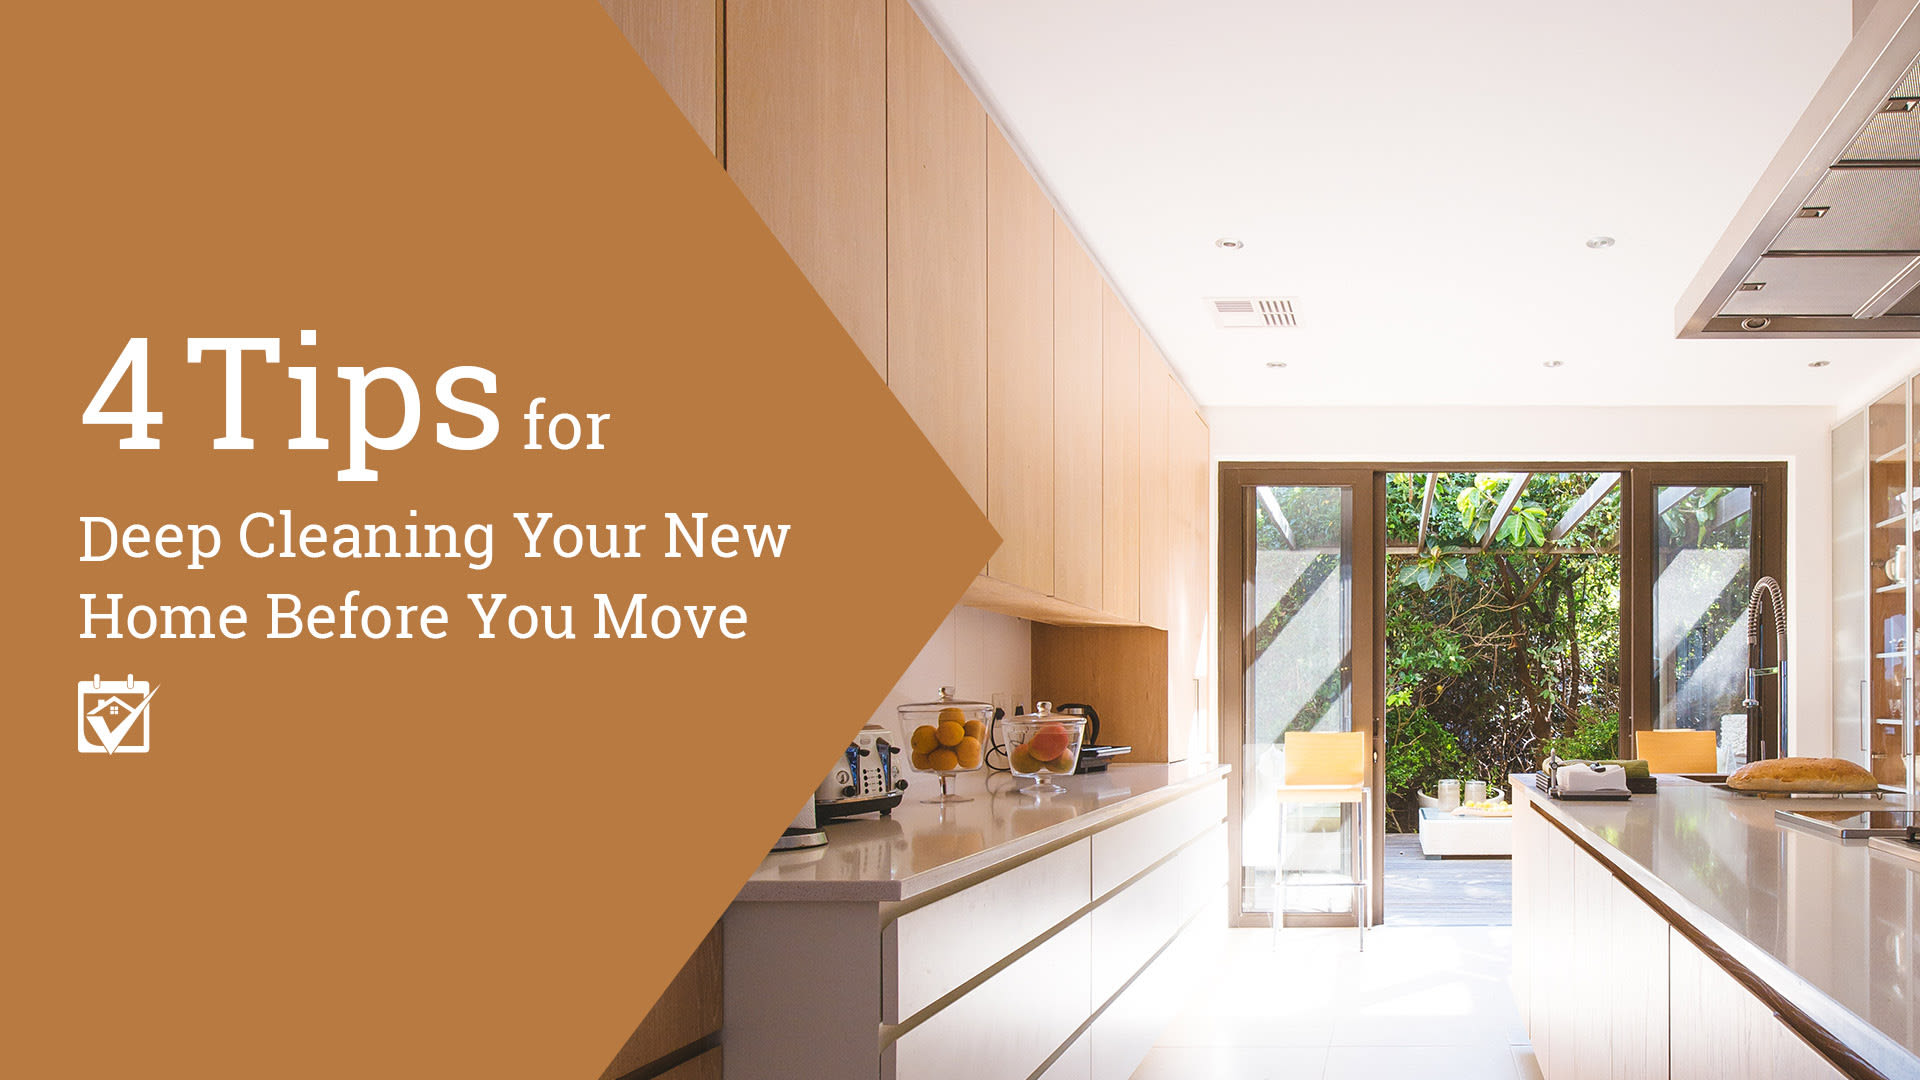 Deep Cleaning Your New Home